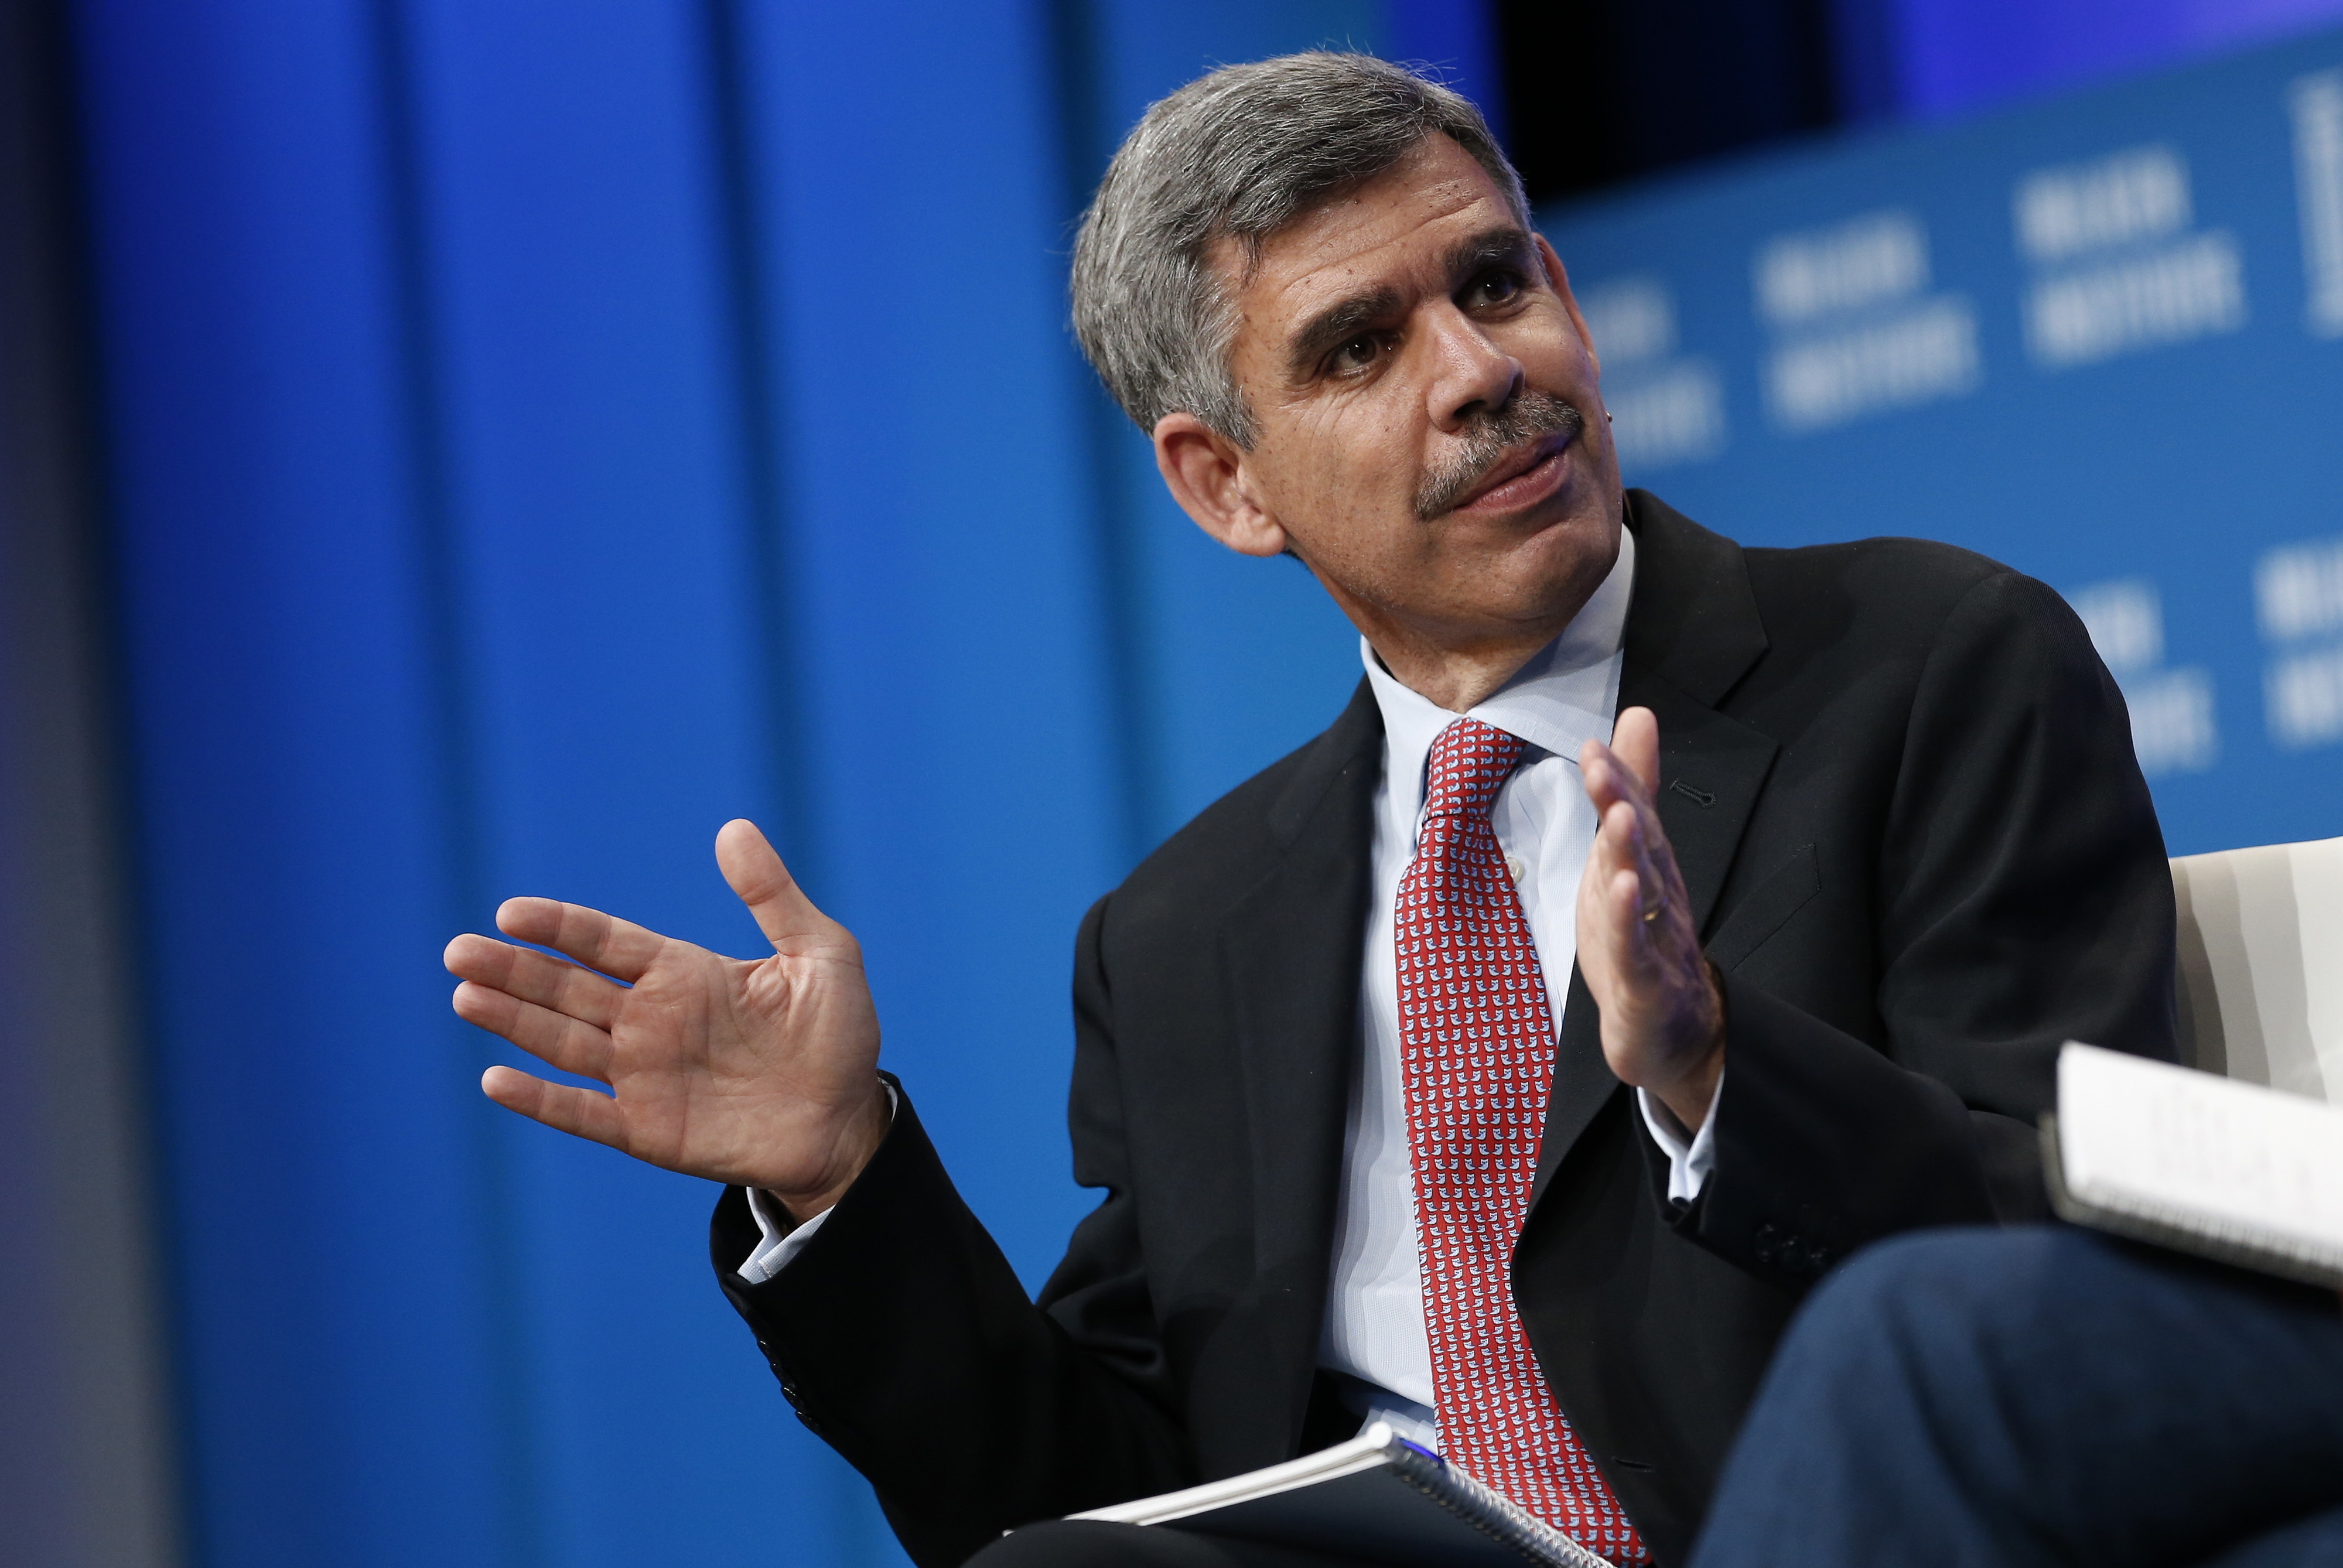 Mohamed El-Erian, chief economic advisor at Allianz SE, speaks during the annual Milken Institute Global Conference in Beverly Hills, California, U.S., on Monday, April 27, 2015.